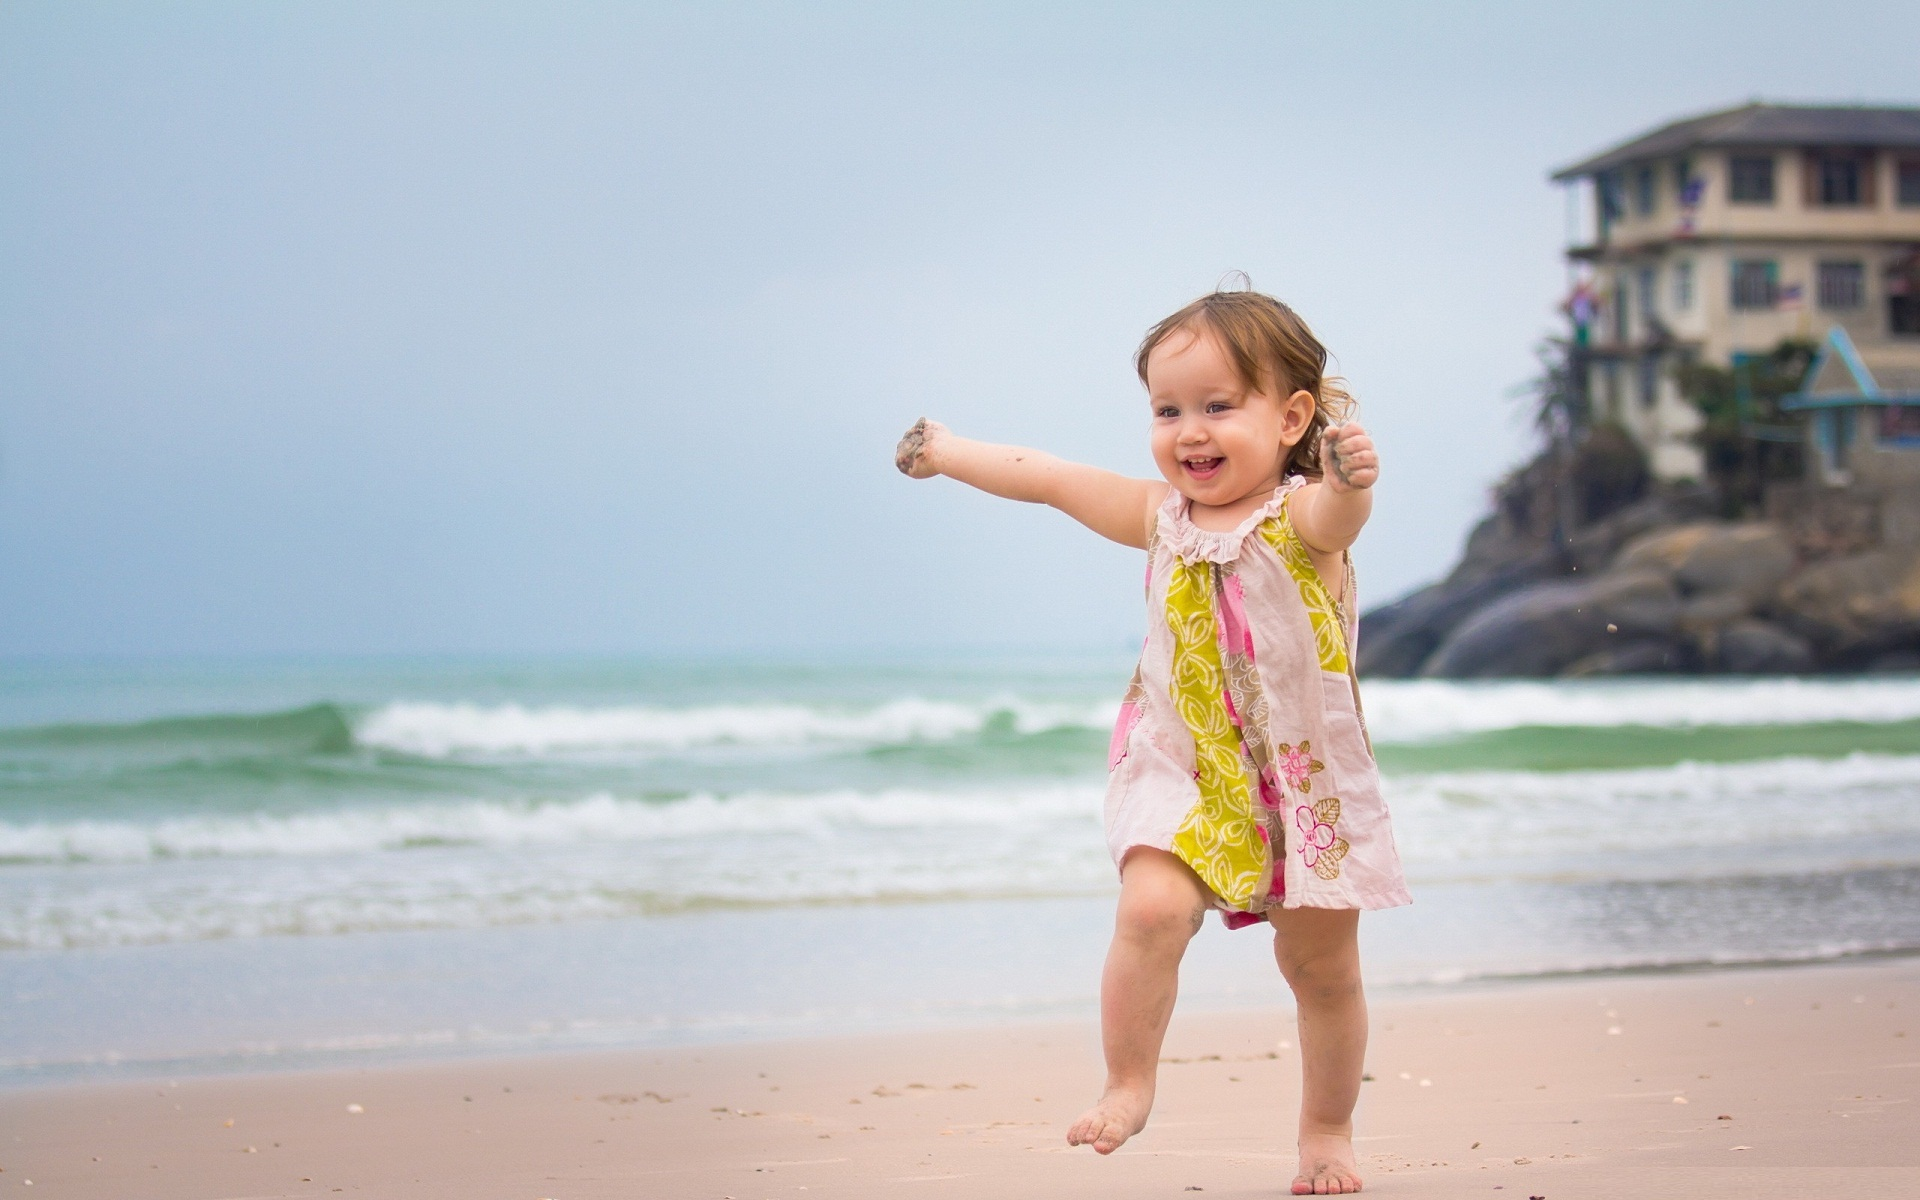 Happy mood cute baby play at beach